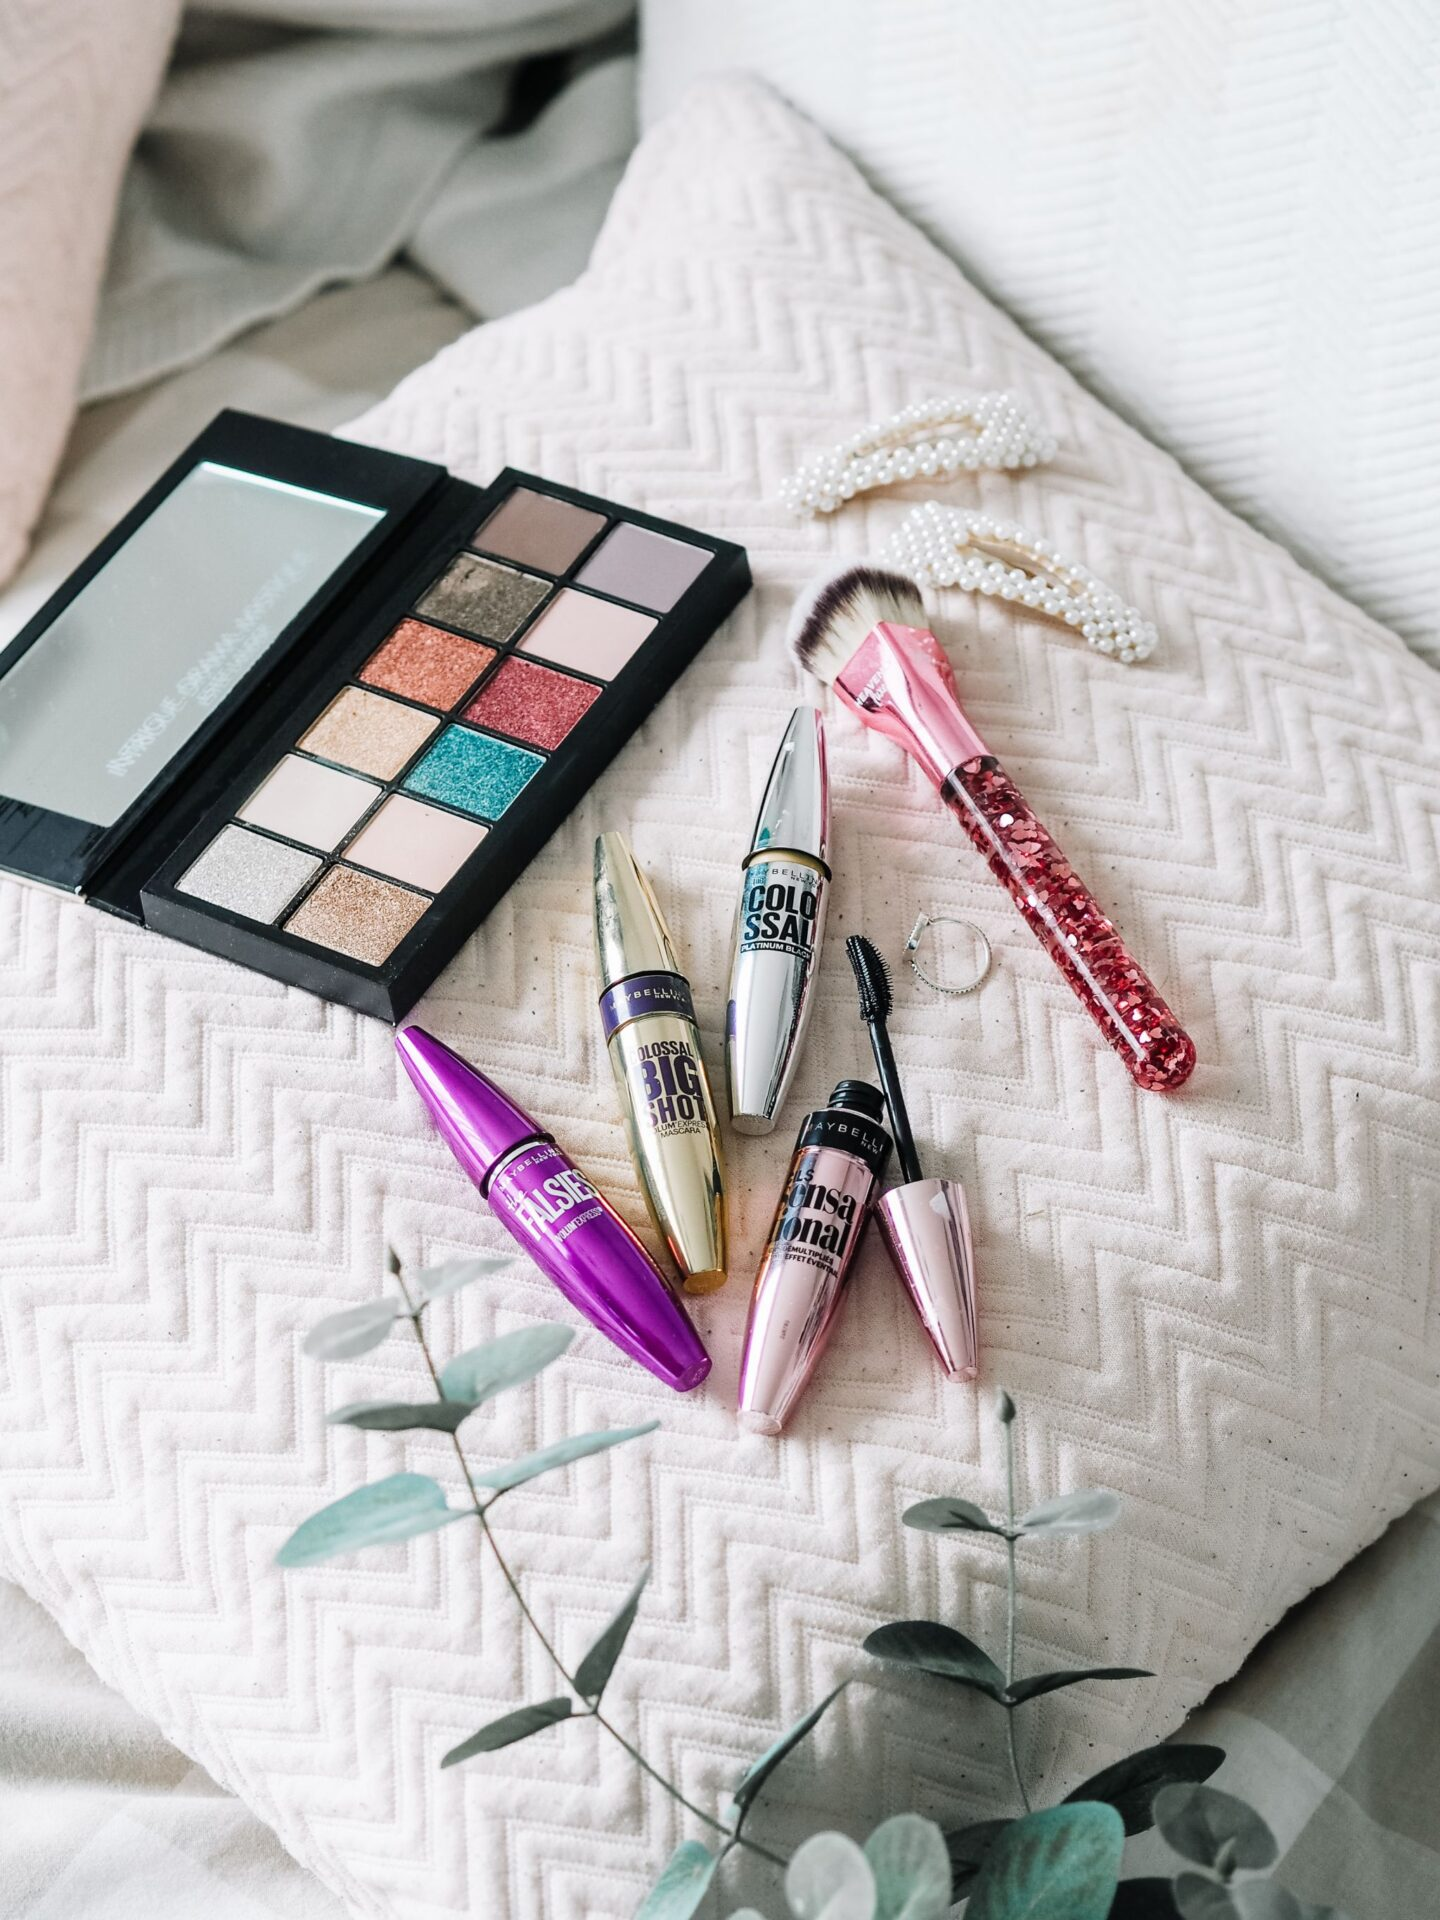 Budget Mascara From Maybelline: Which Of These 4 Is Best For You?